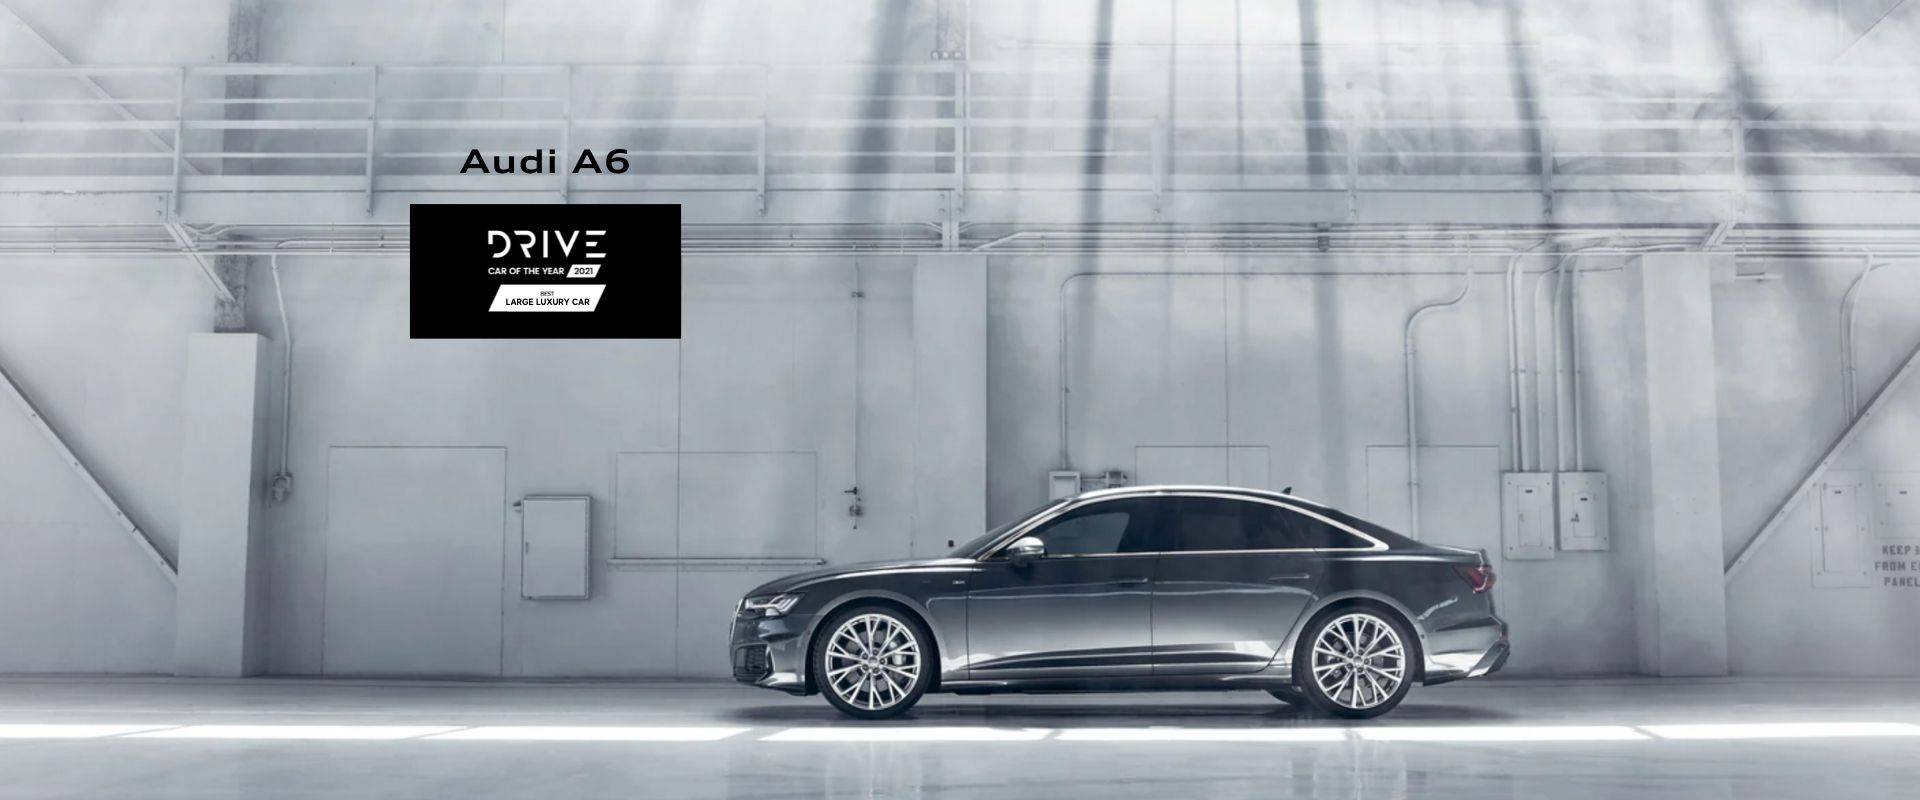 Audi A6 Drive Car of the Year